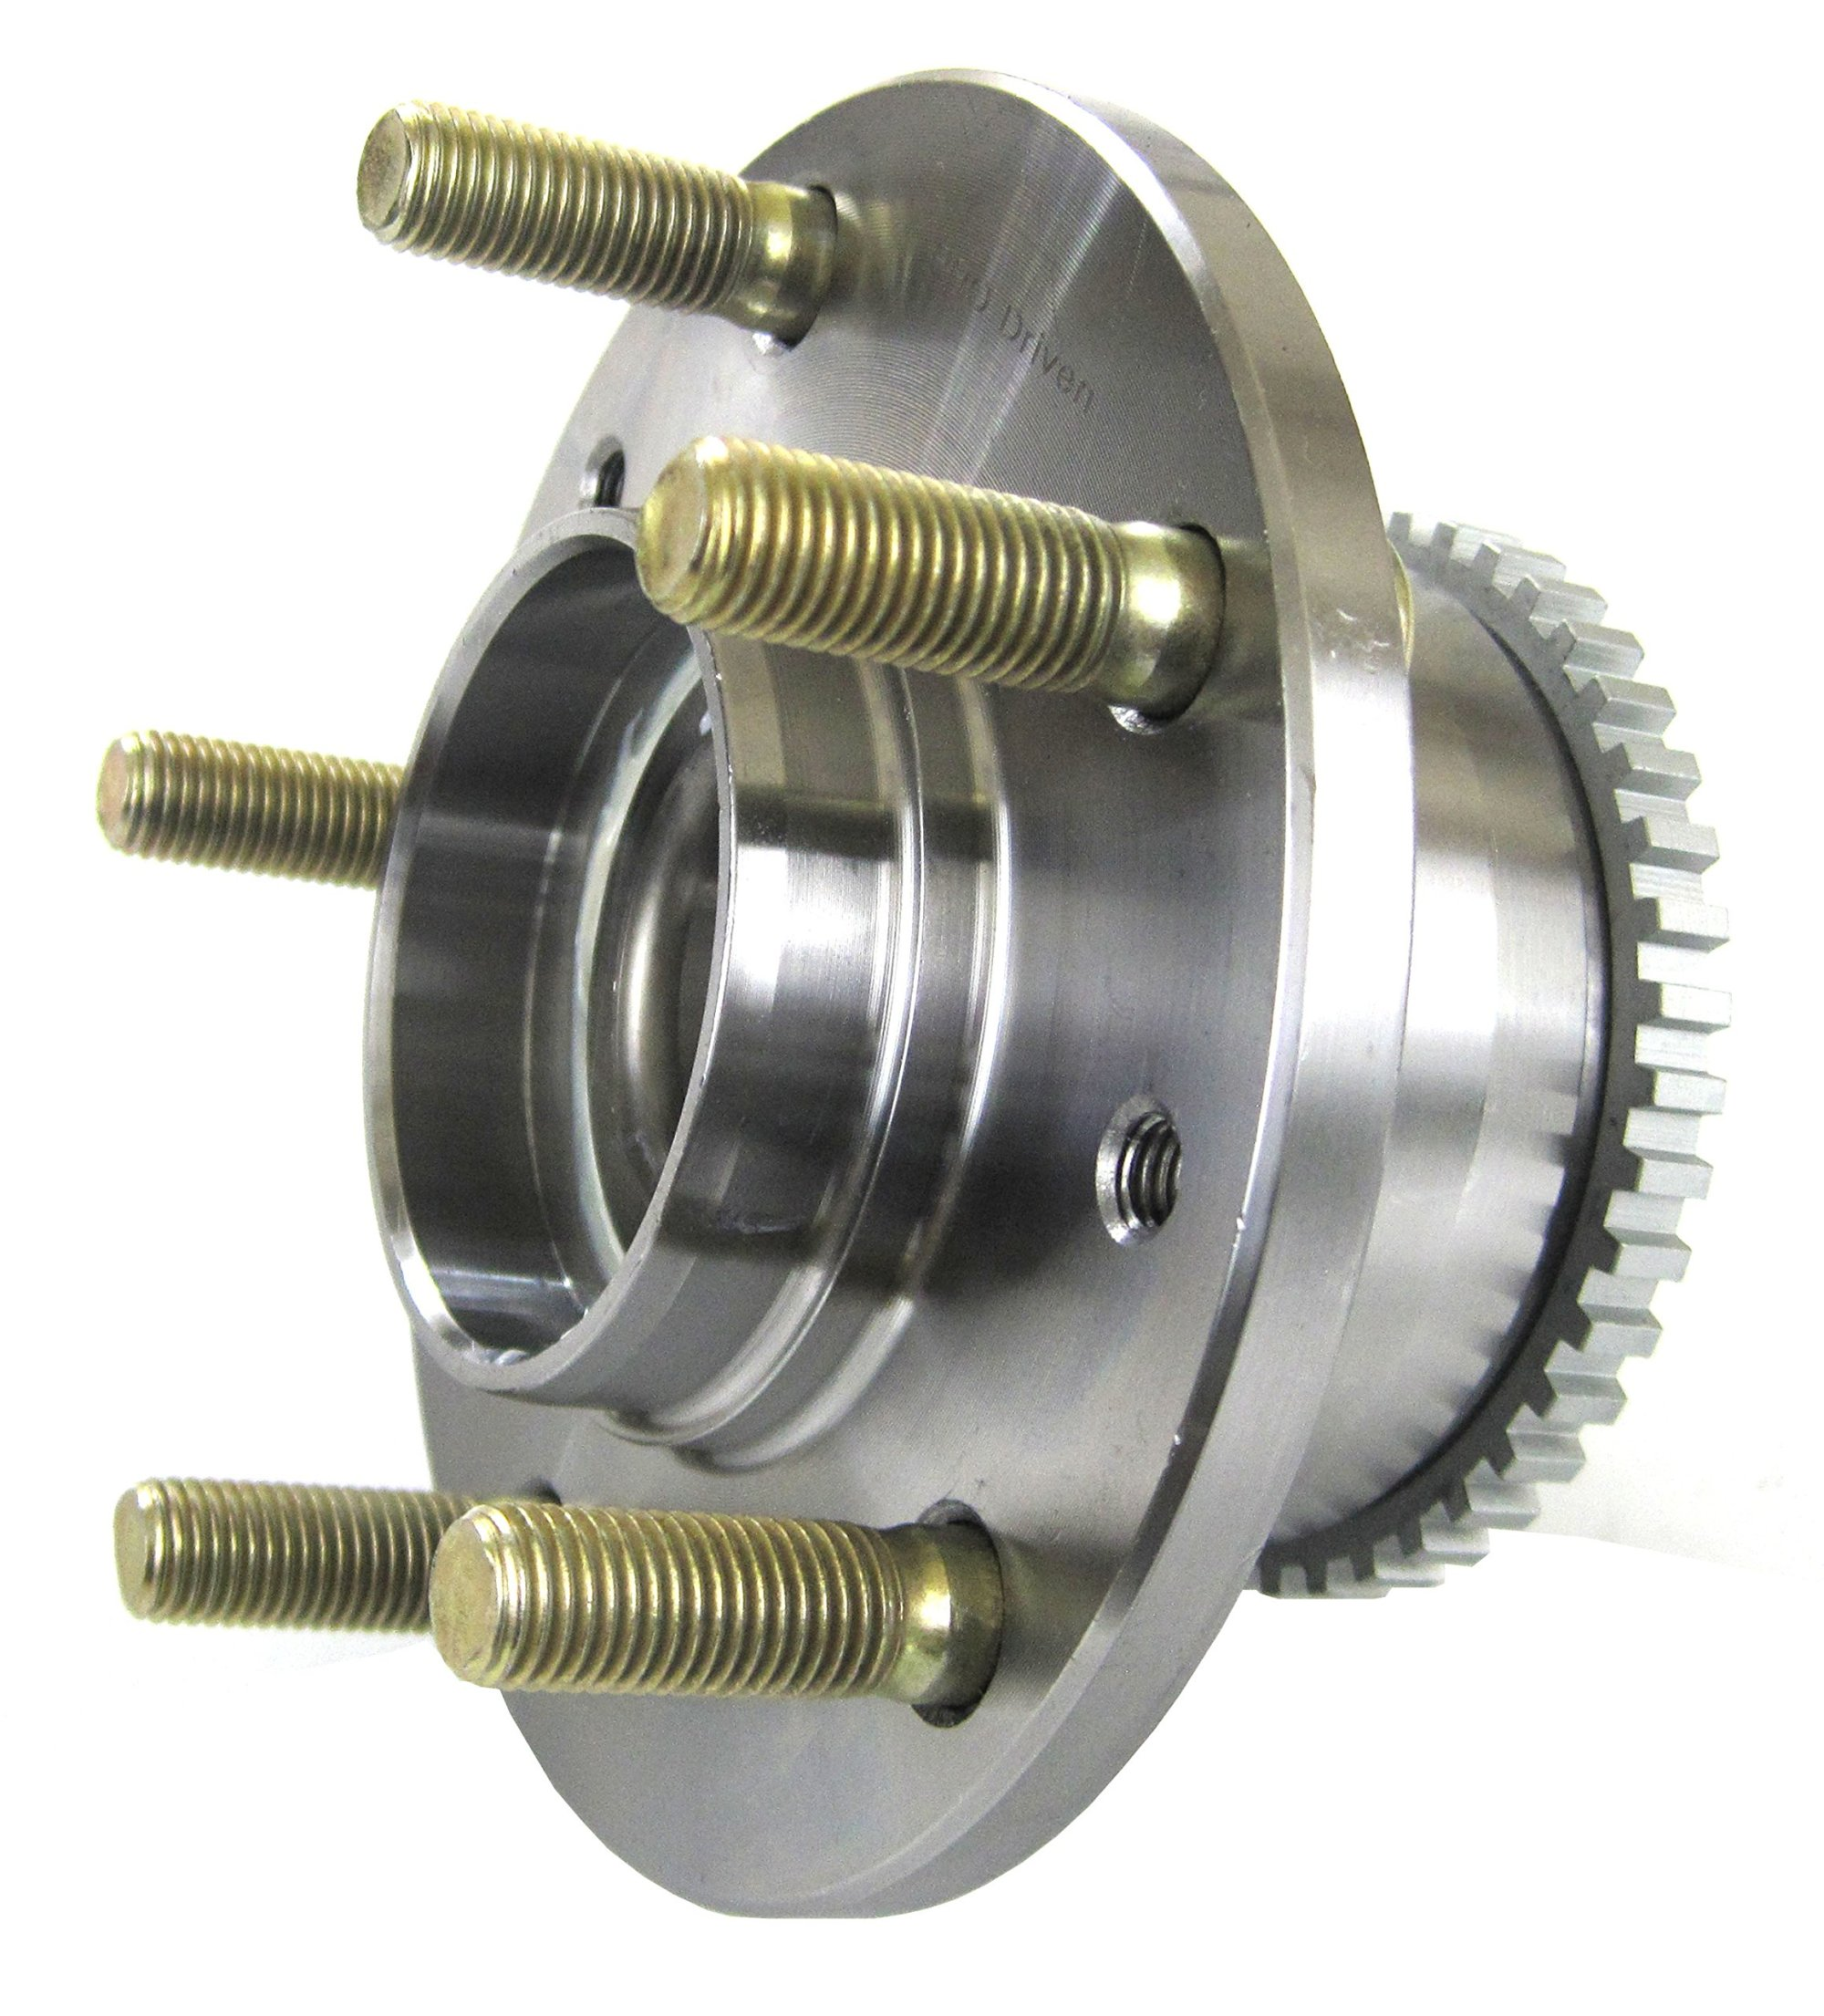 hight resolution of get quotations pro driven 512269 wheel bearing hub assembly rear for mazda millenia mpv prot g